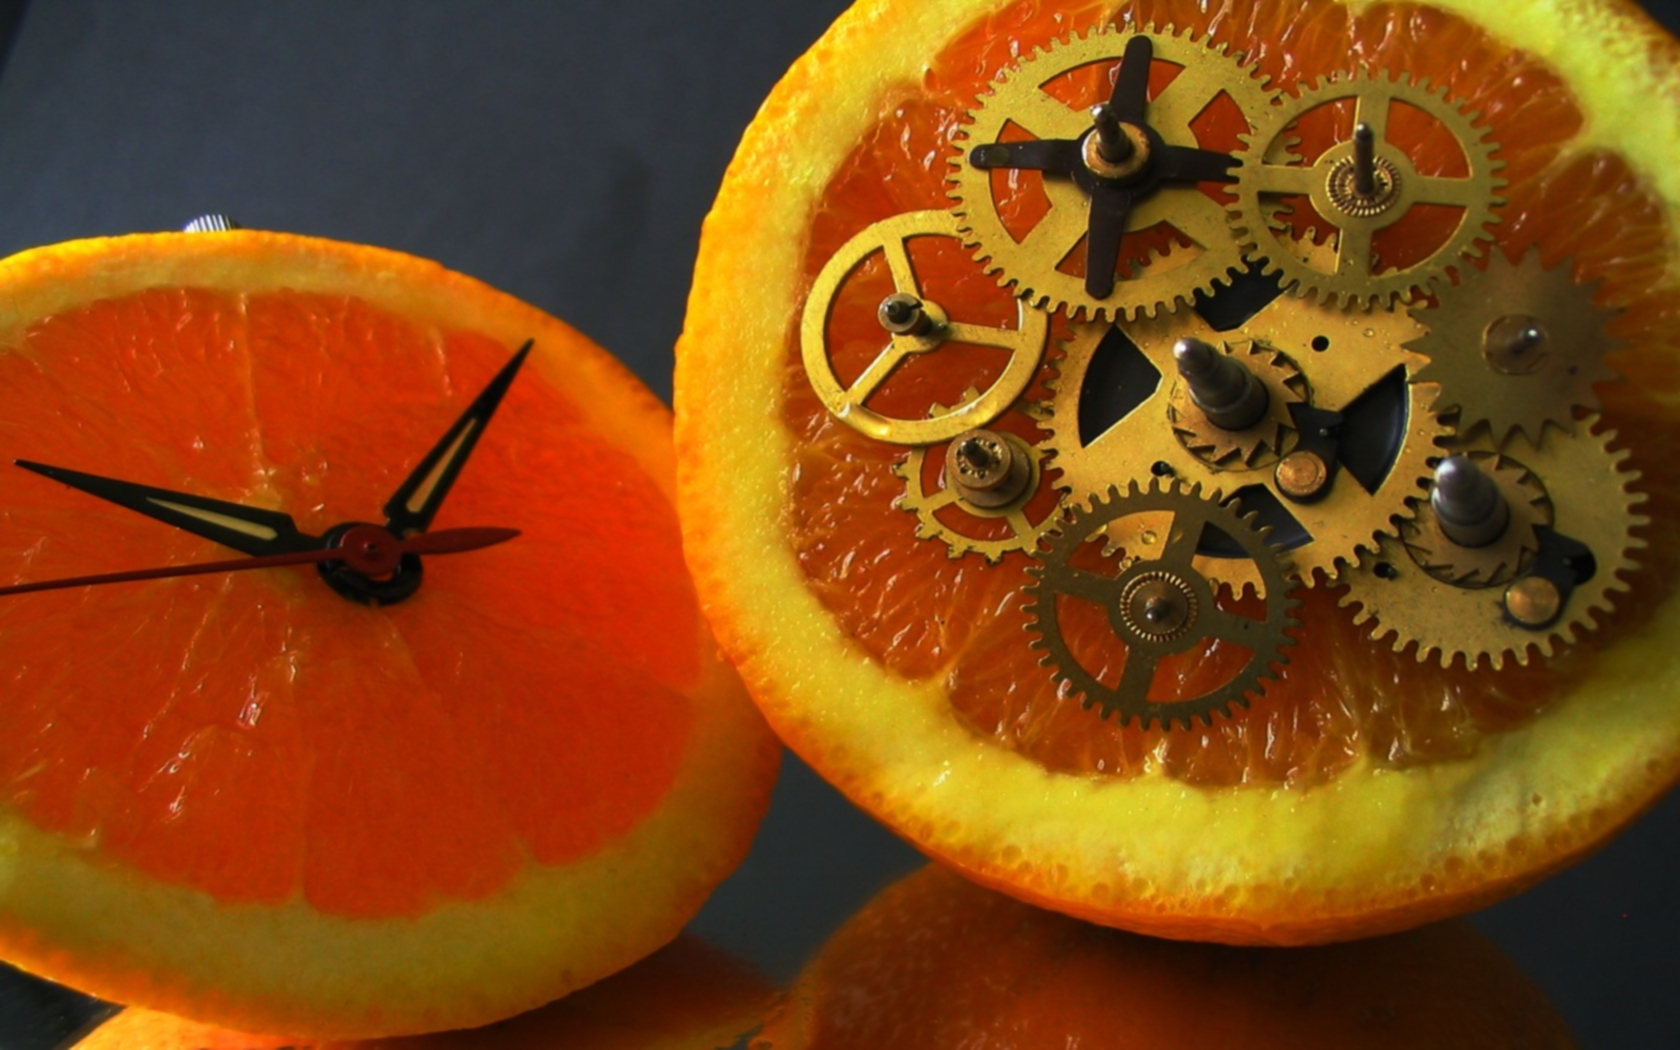 Naziv: fruits-clocks_Orange.jpg, pregleda: 110, veličina: 840,6 KB